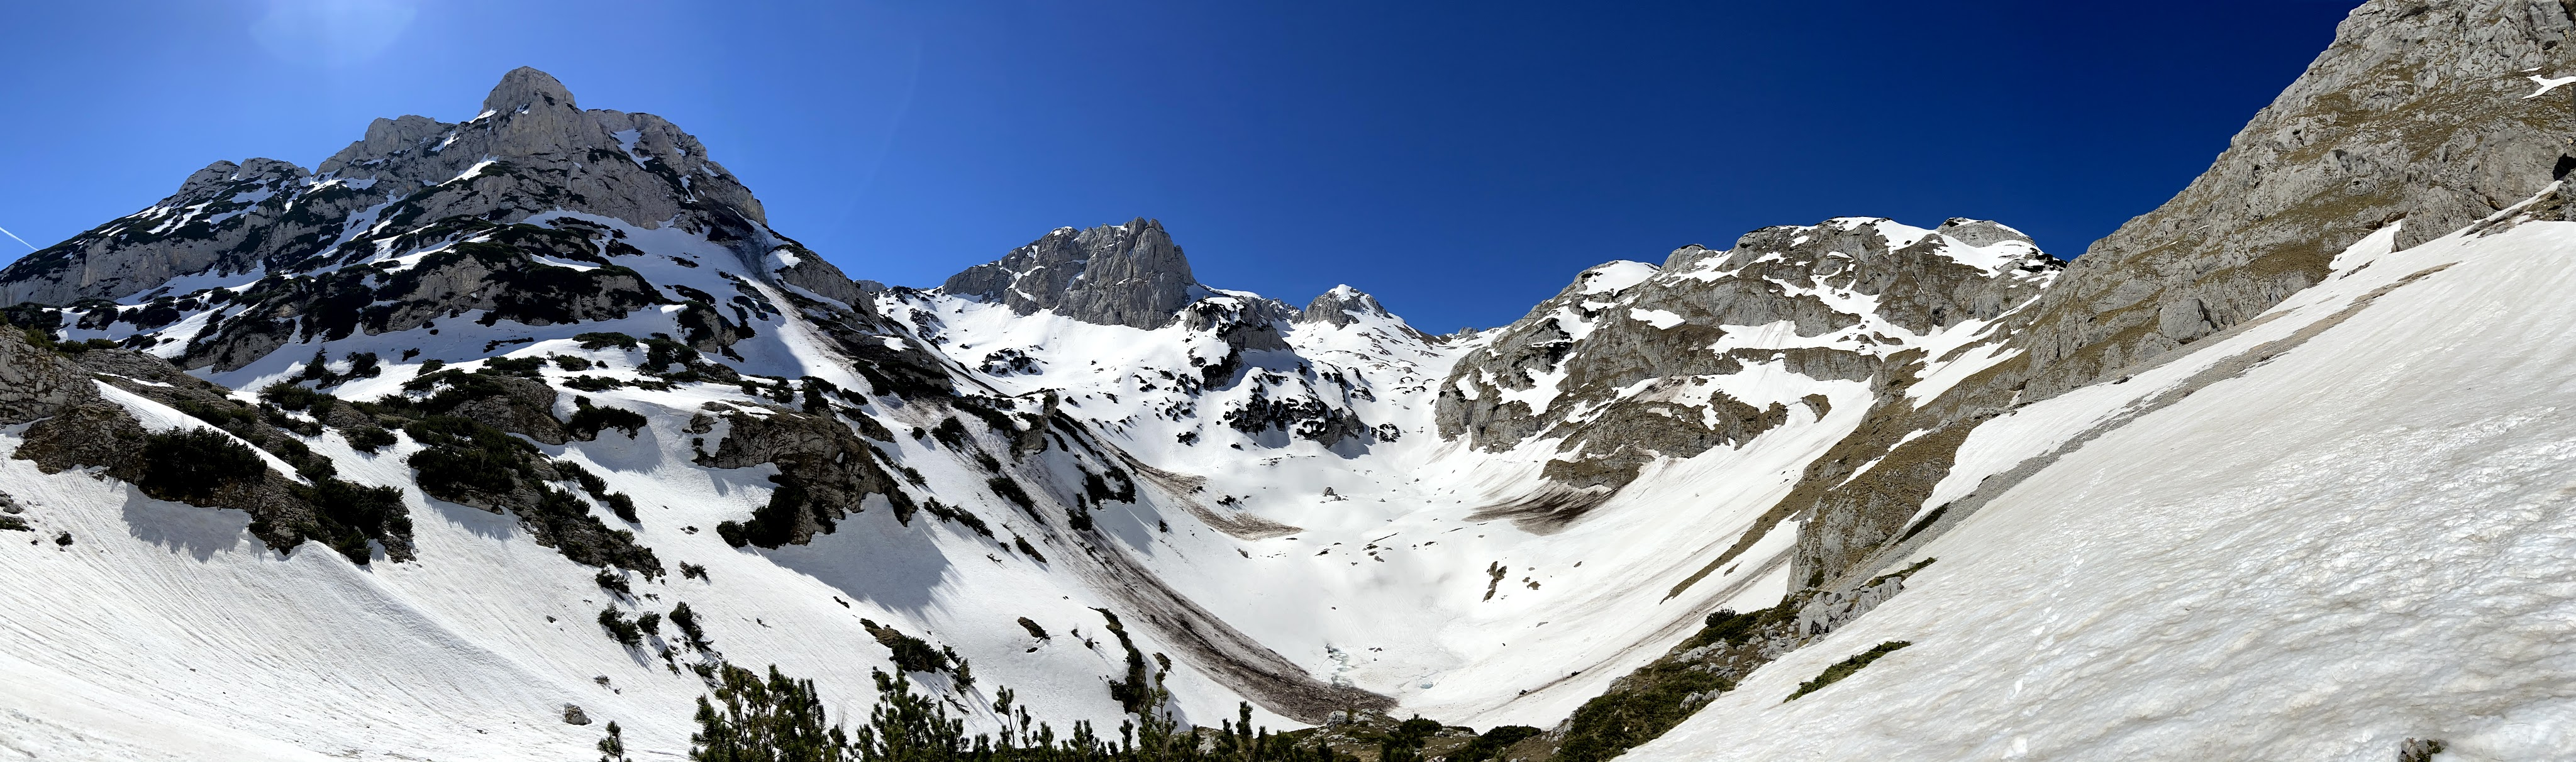 Panoramic photo of the mountain range over in snow. Bobotov Kuk summit is striking. The craggy summit is emerging from the snow.